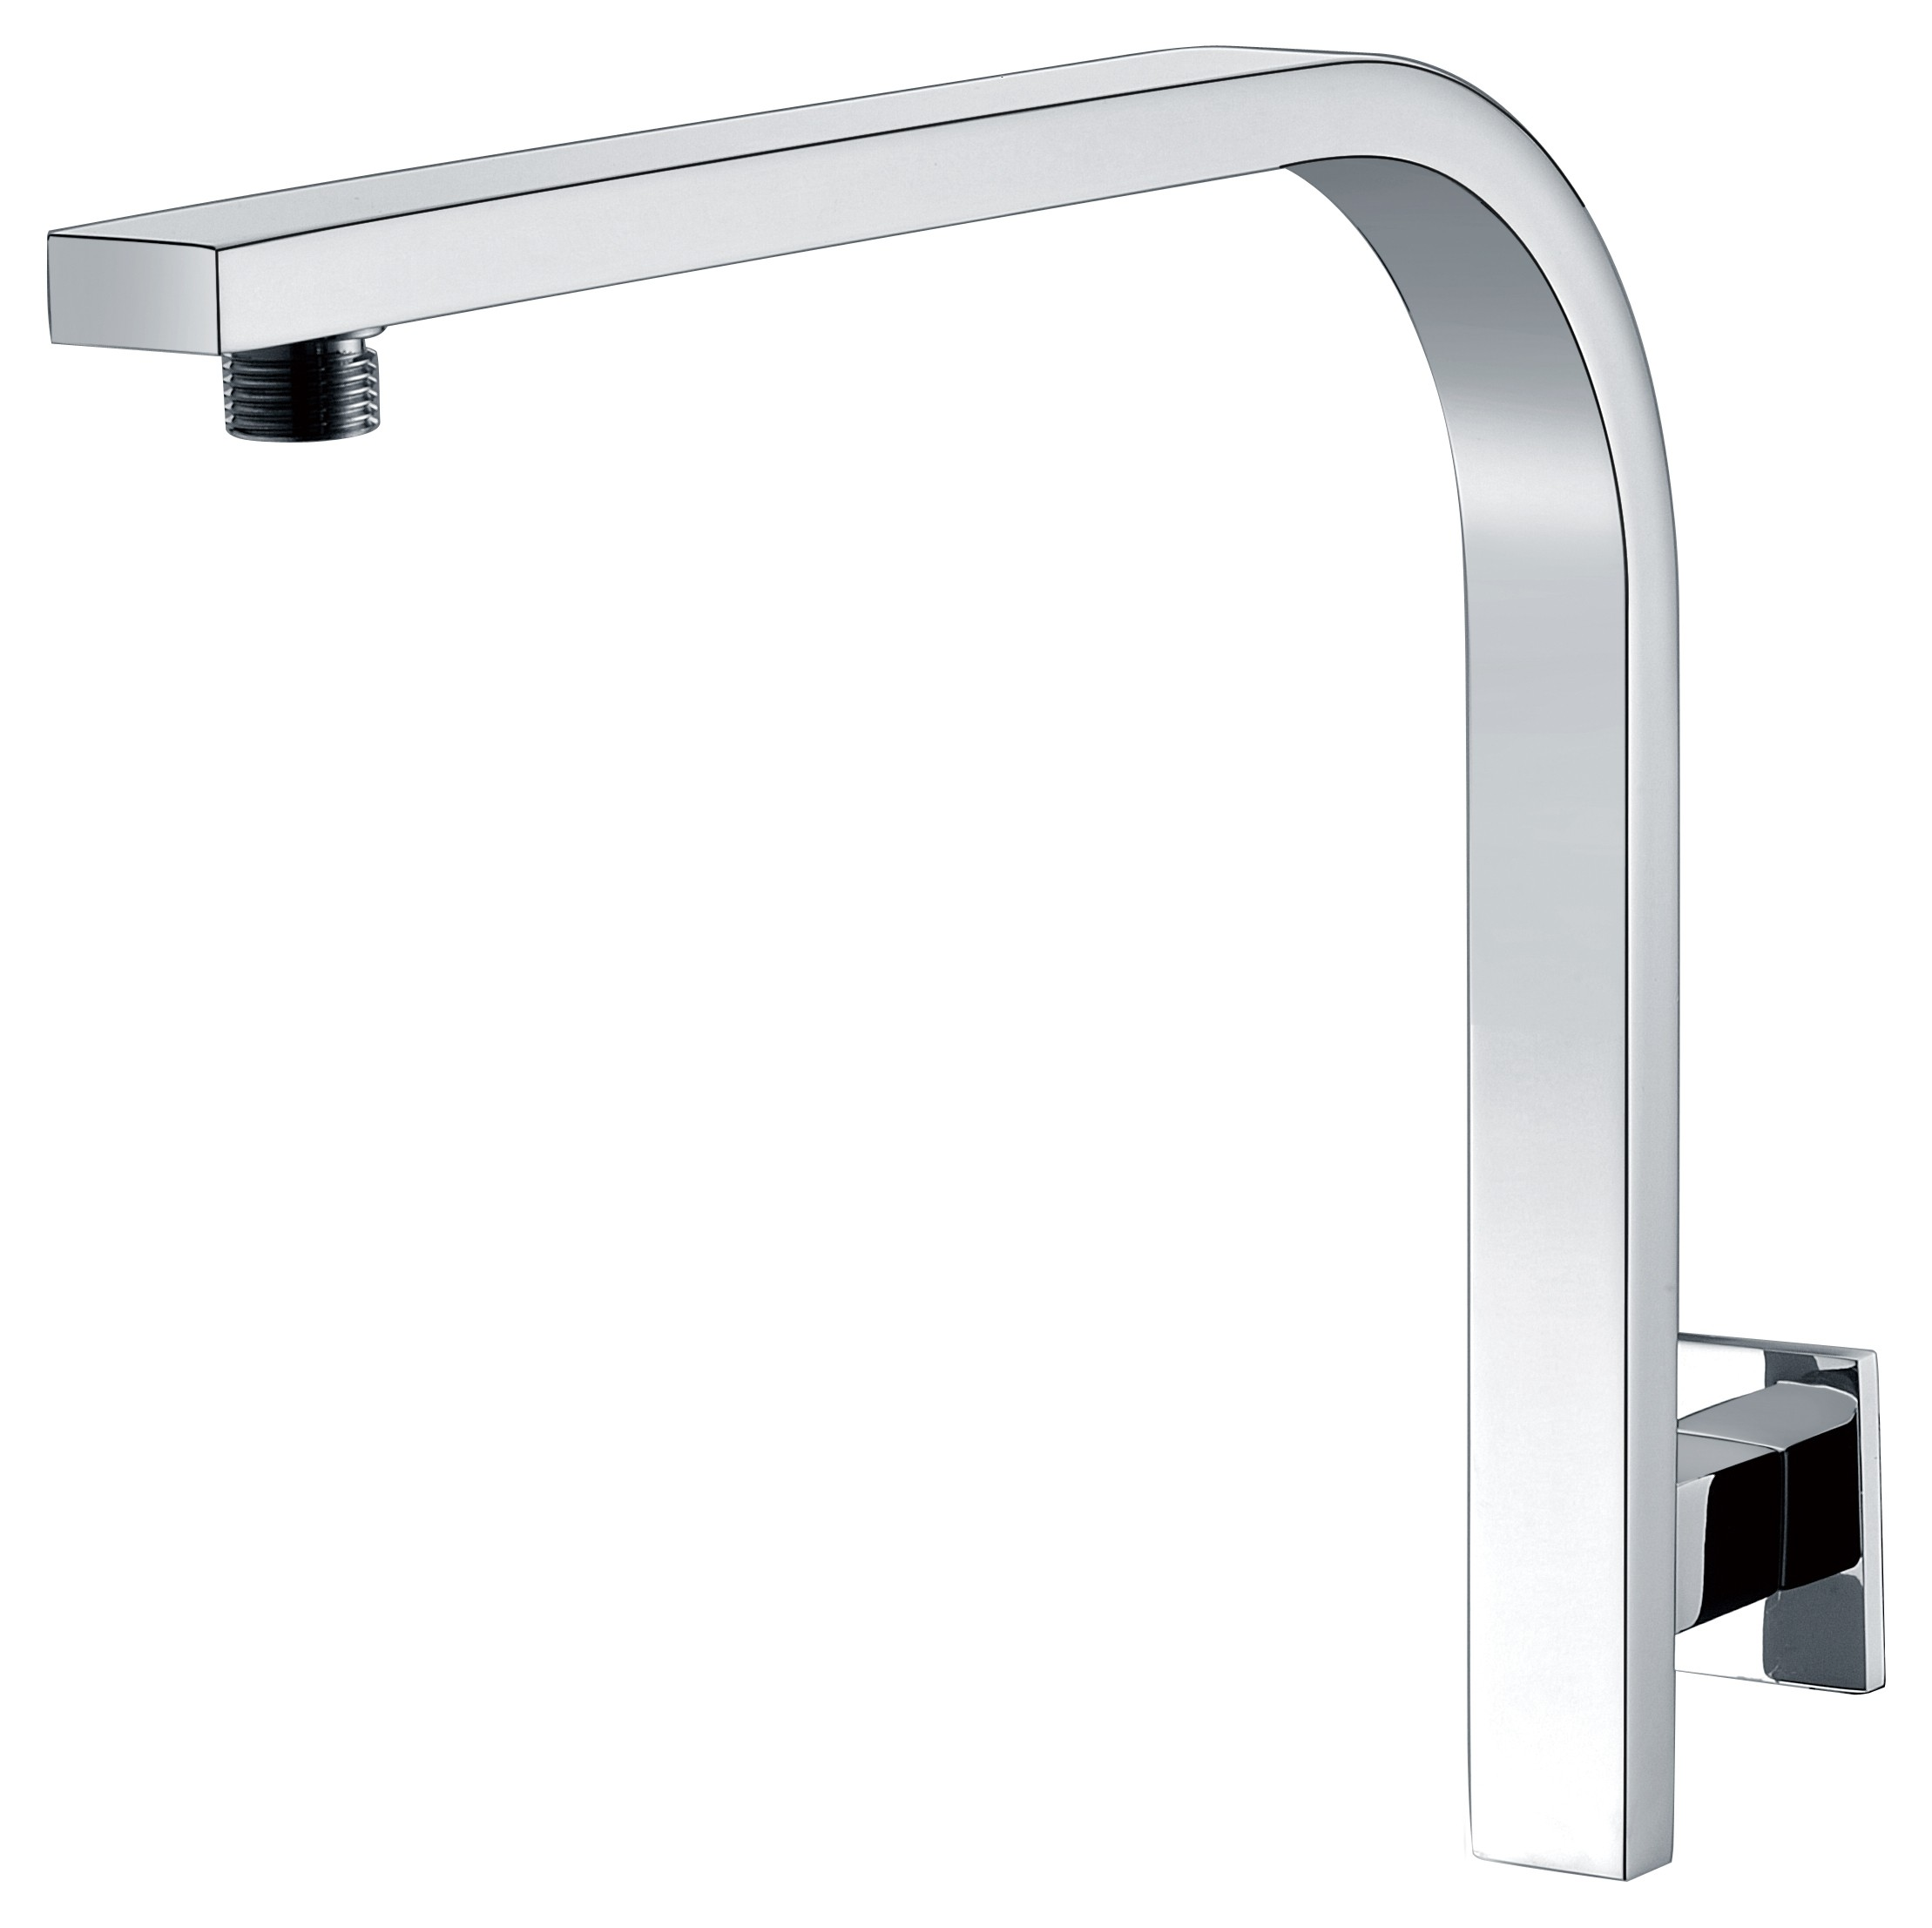 Cubo HRS-1 SQUARE HIGH RISE SHOWER ARM WALL